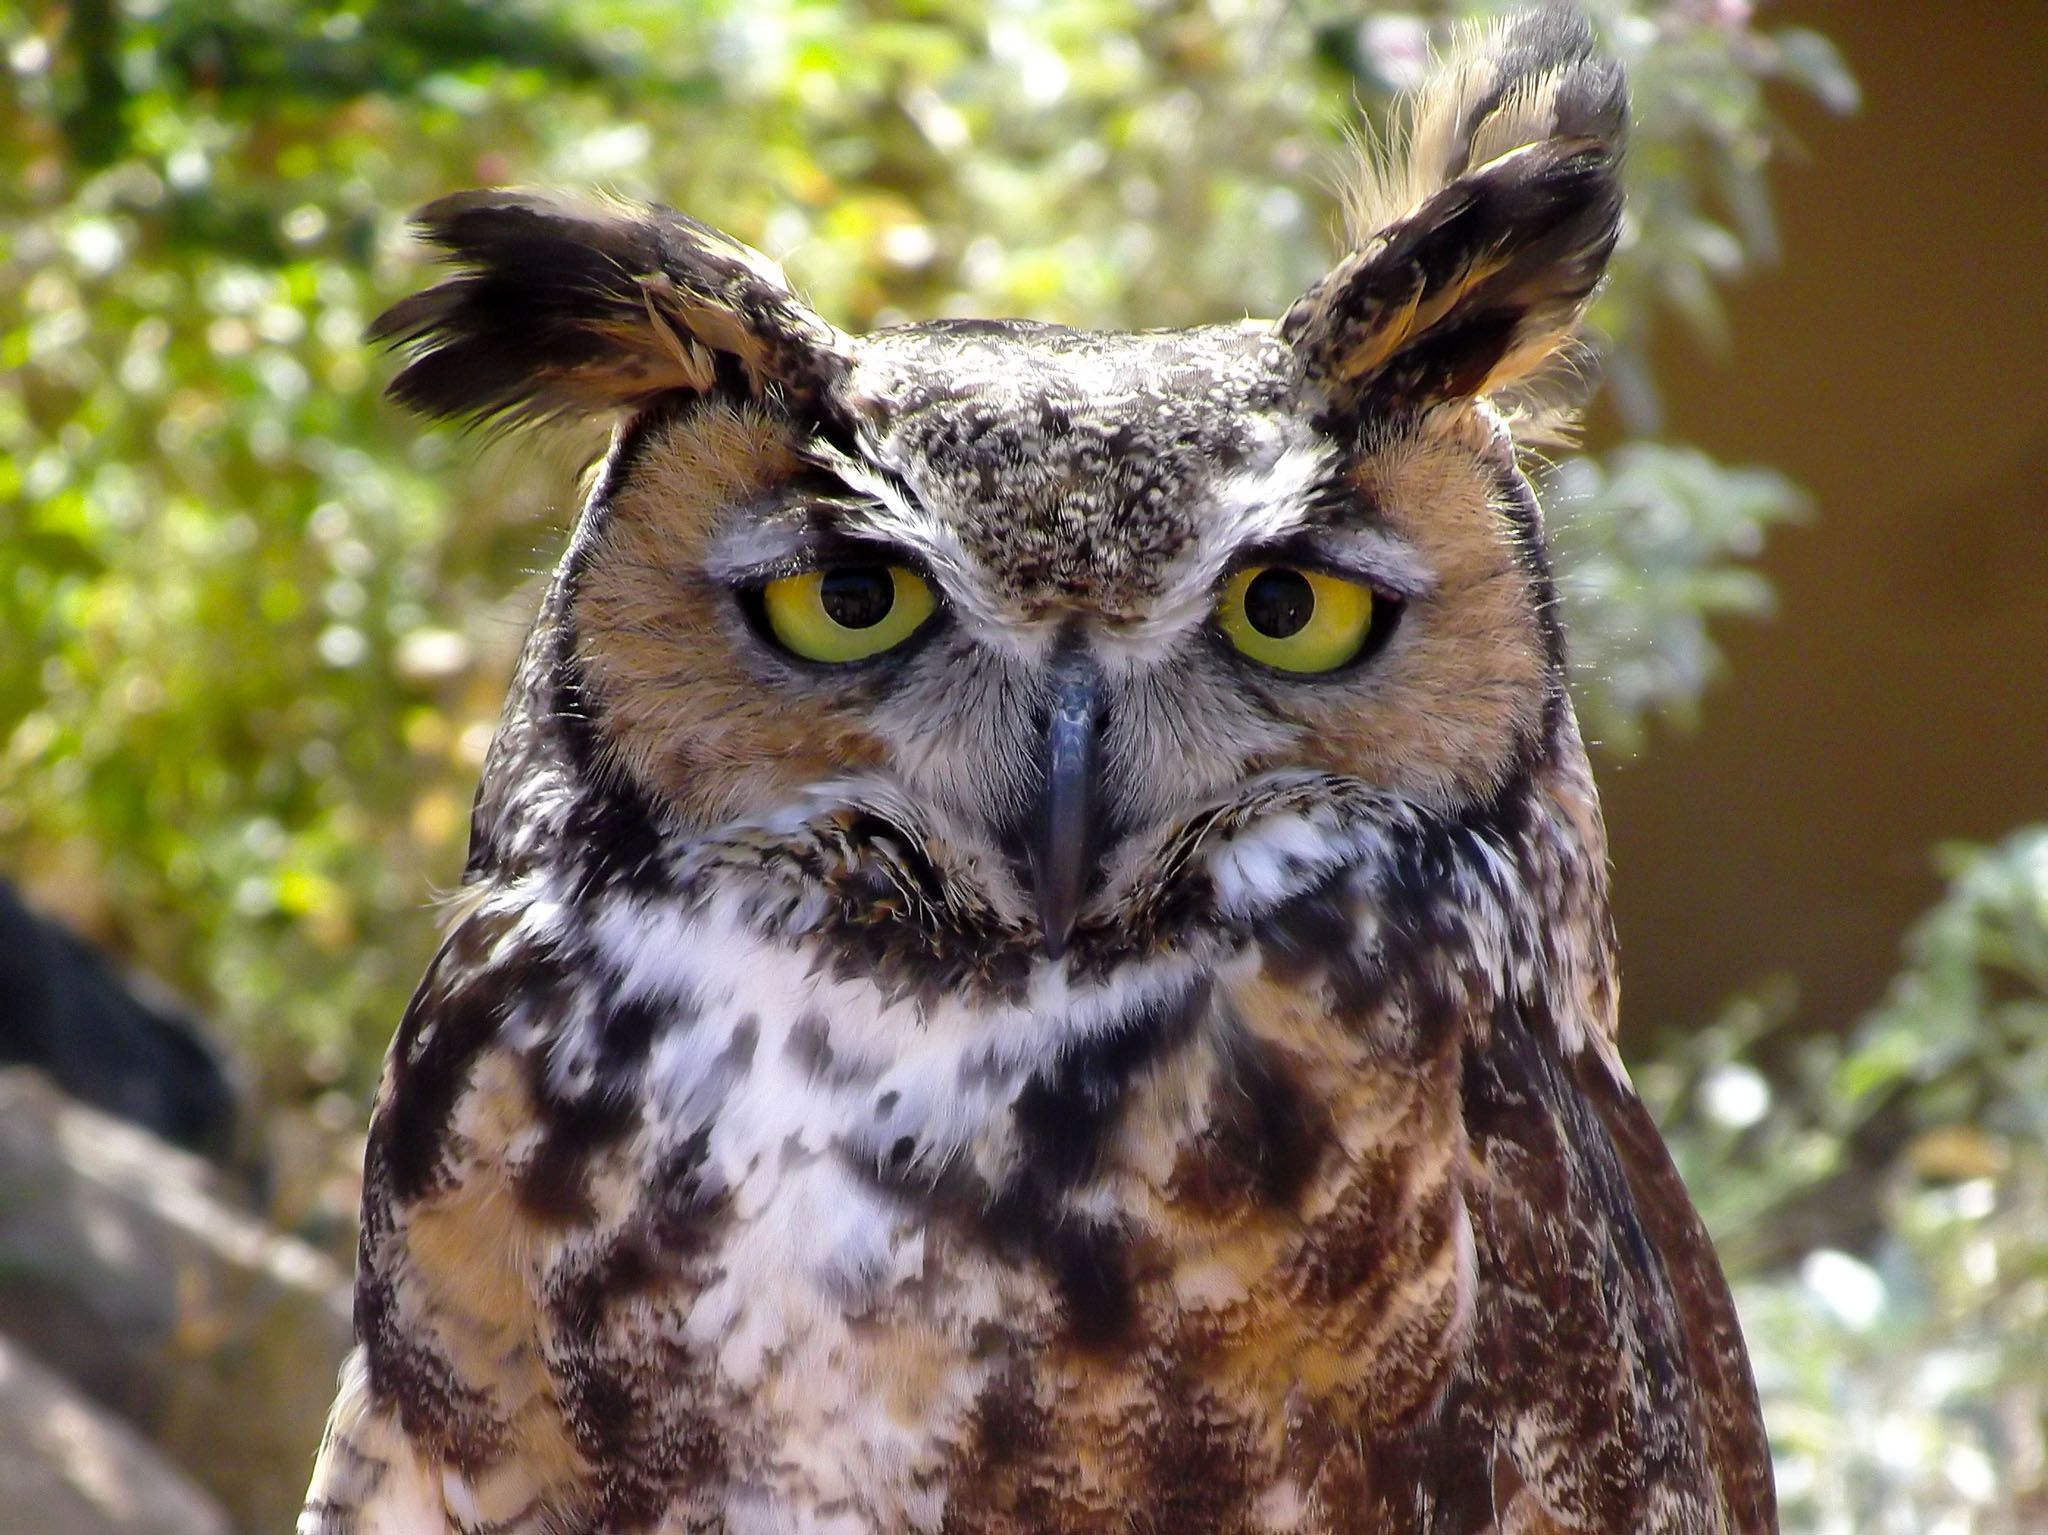 Arizona: Great horned owl. This image is from The Desert Sea. [Photo of the day - آوریل 2017]